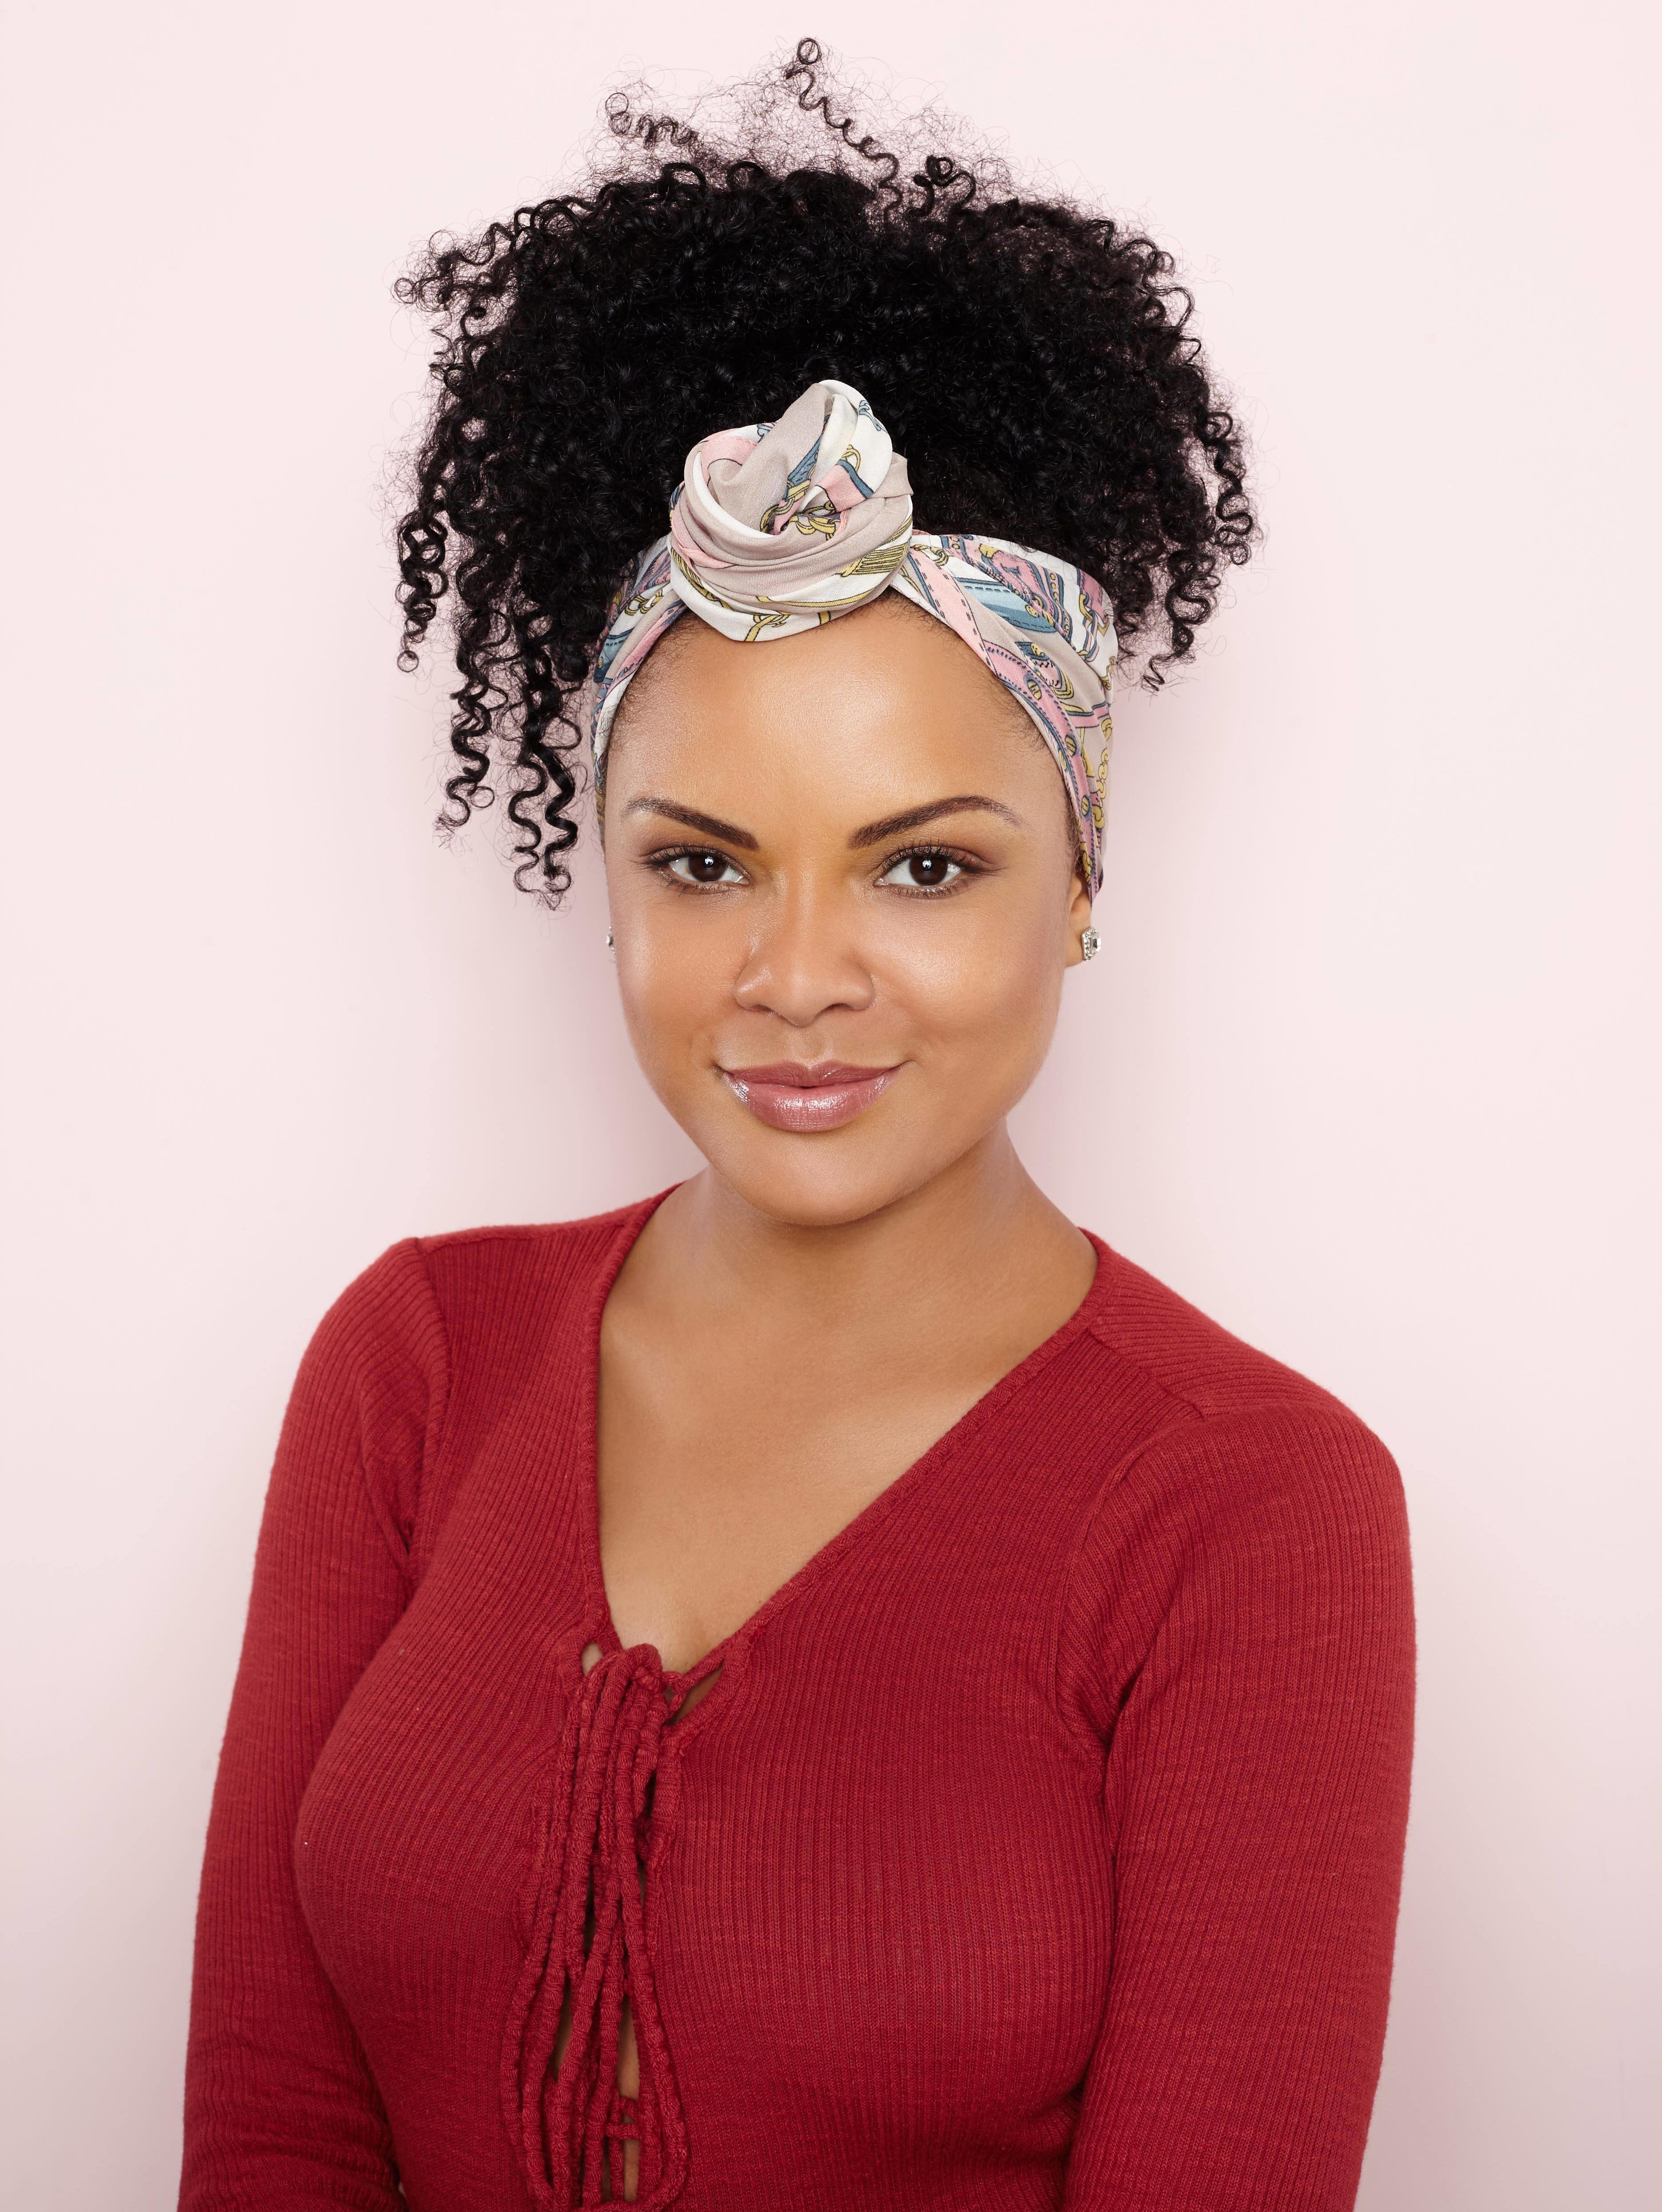 Curly hair styles: All Things Hair - IMAGE - ponytail bandana hair accessory